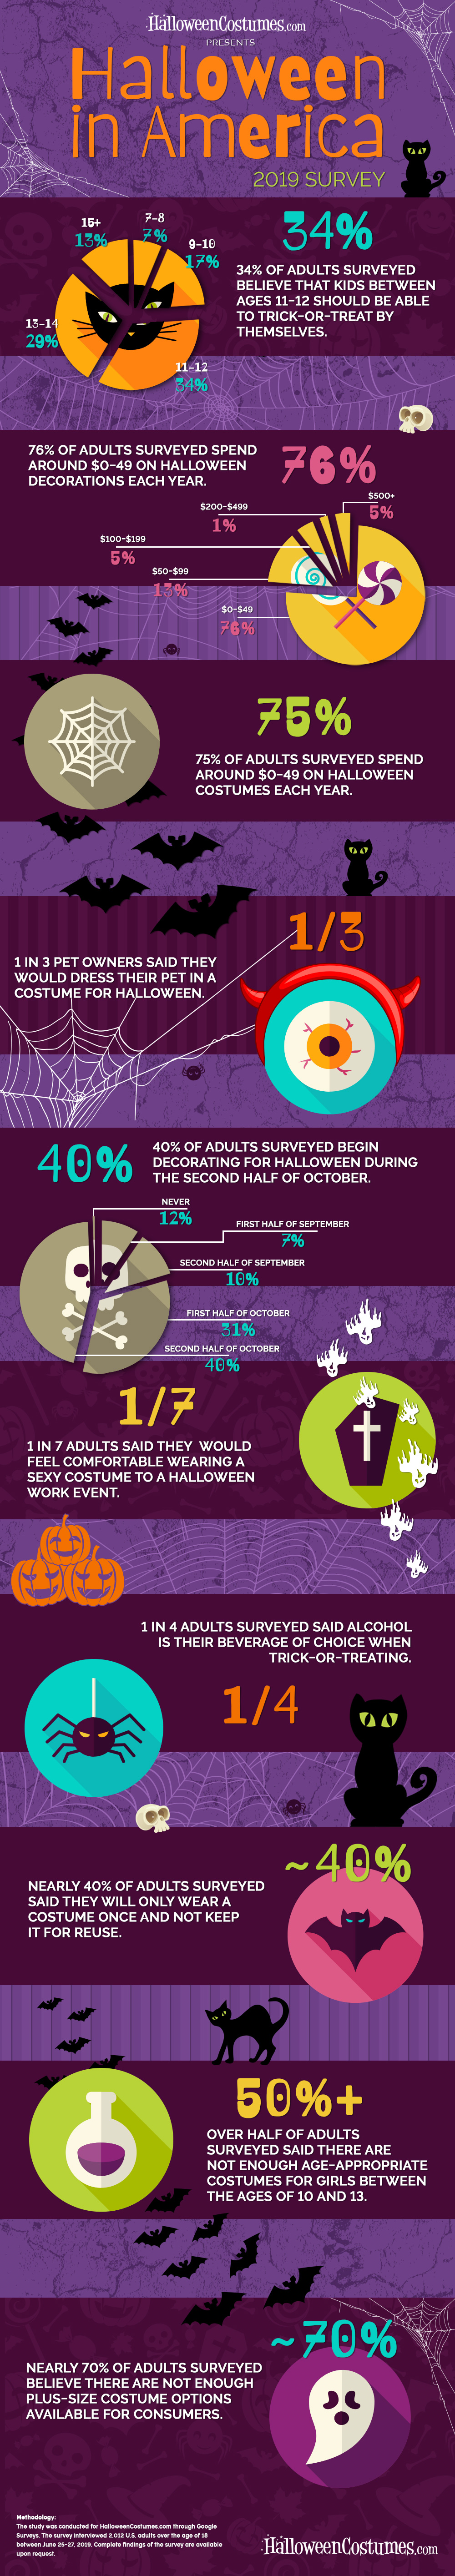 2019 'Halloween in America Survey' Results